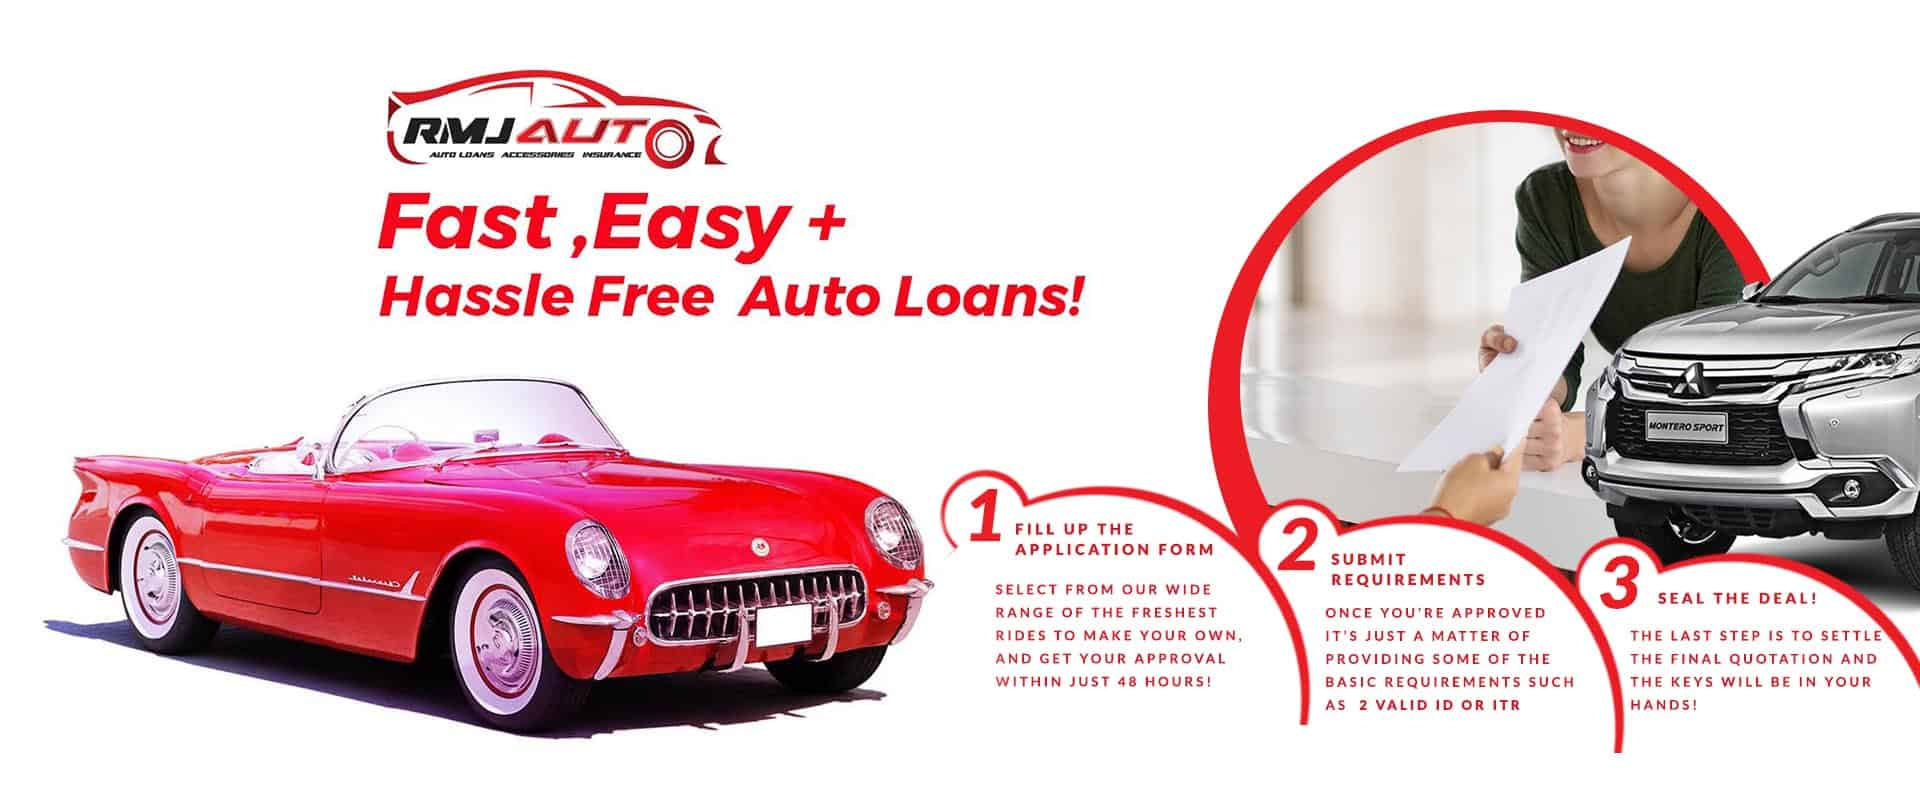 Are you looking to get a new car?